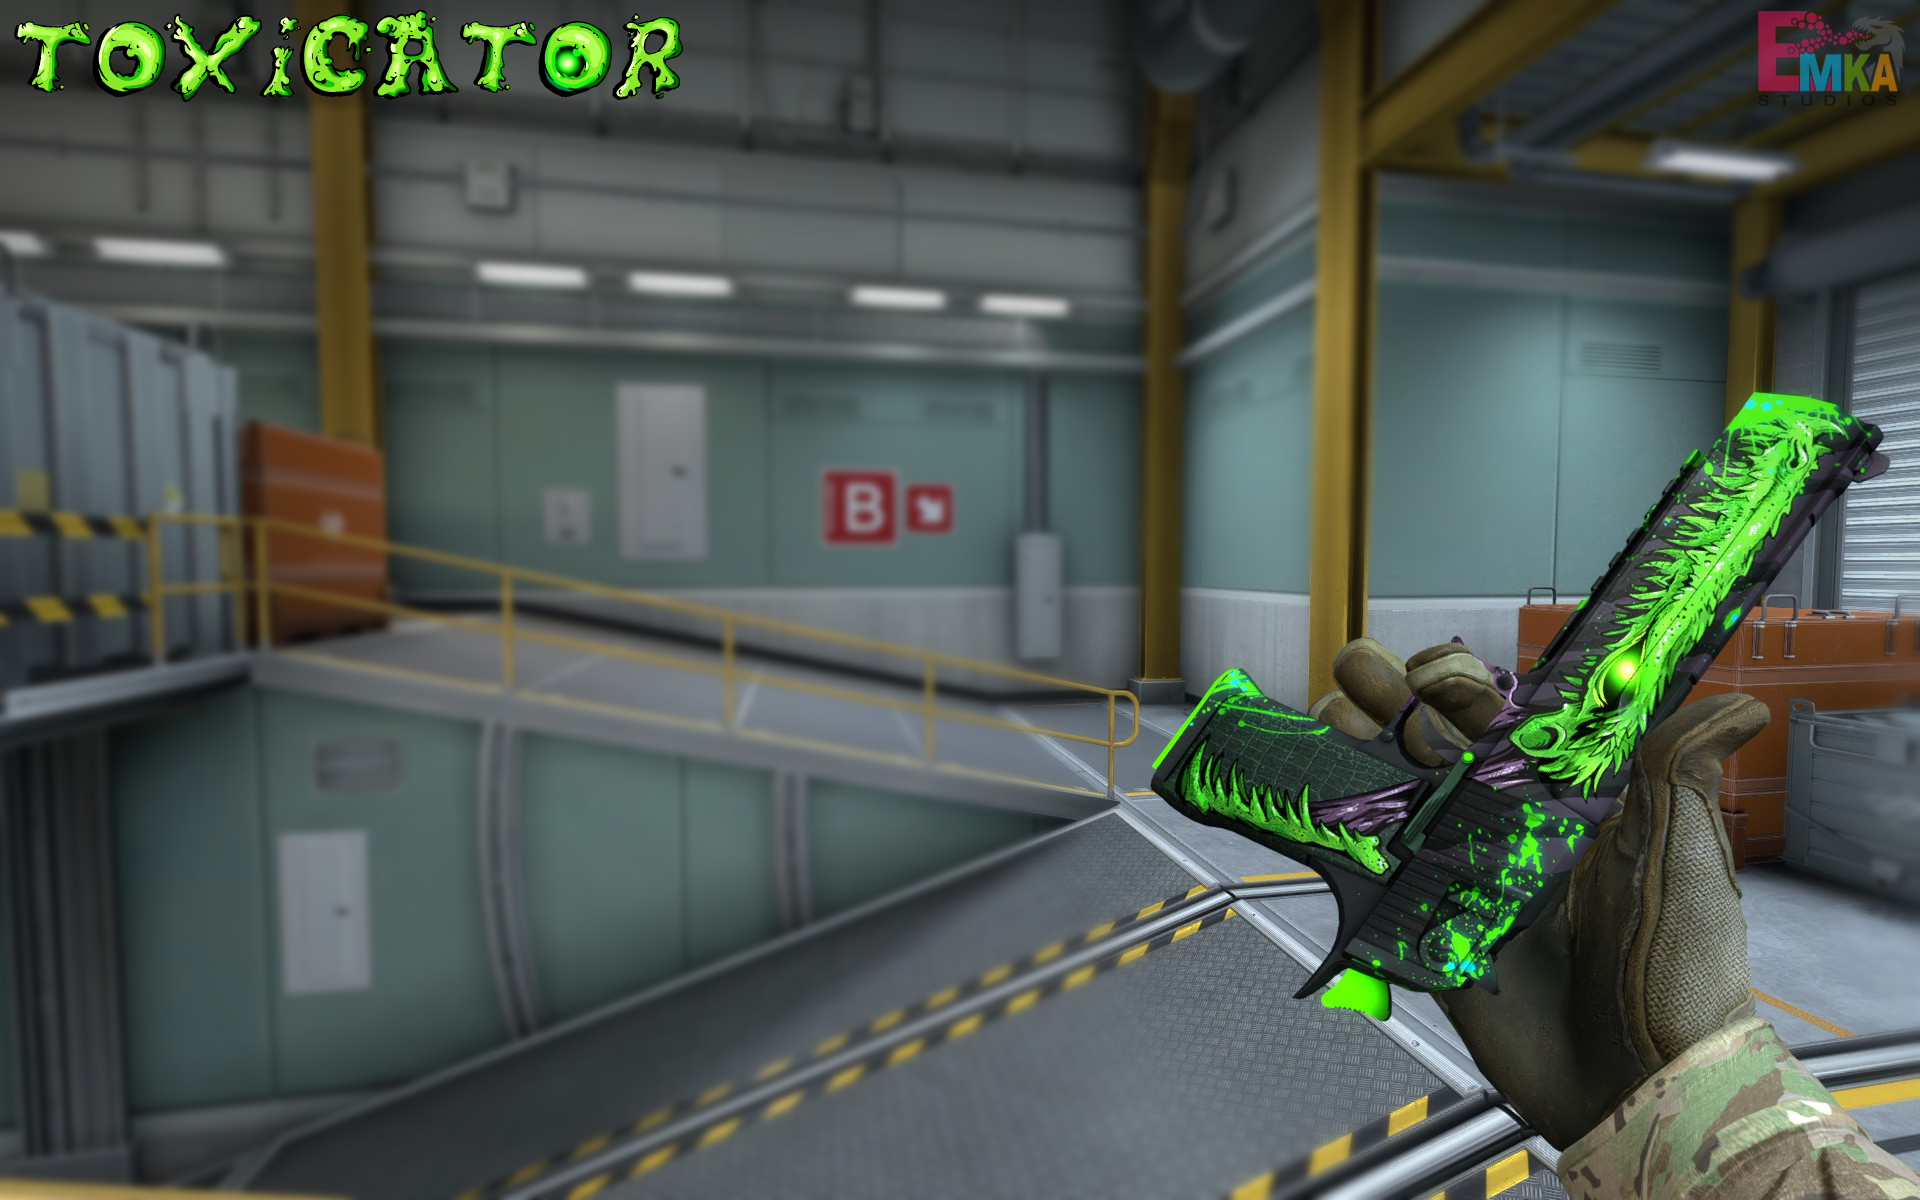 5 best Desert Eagle black toxicator 3